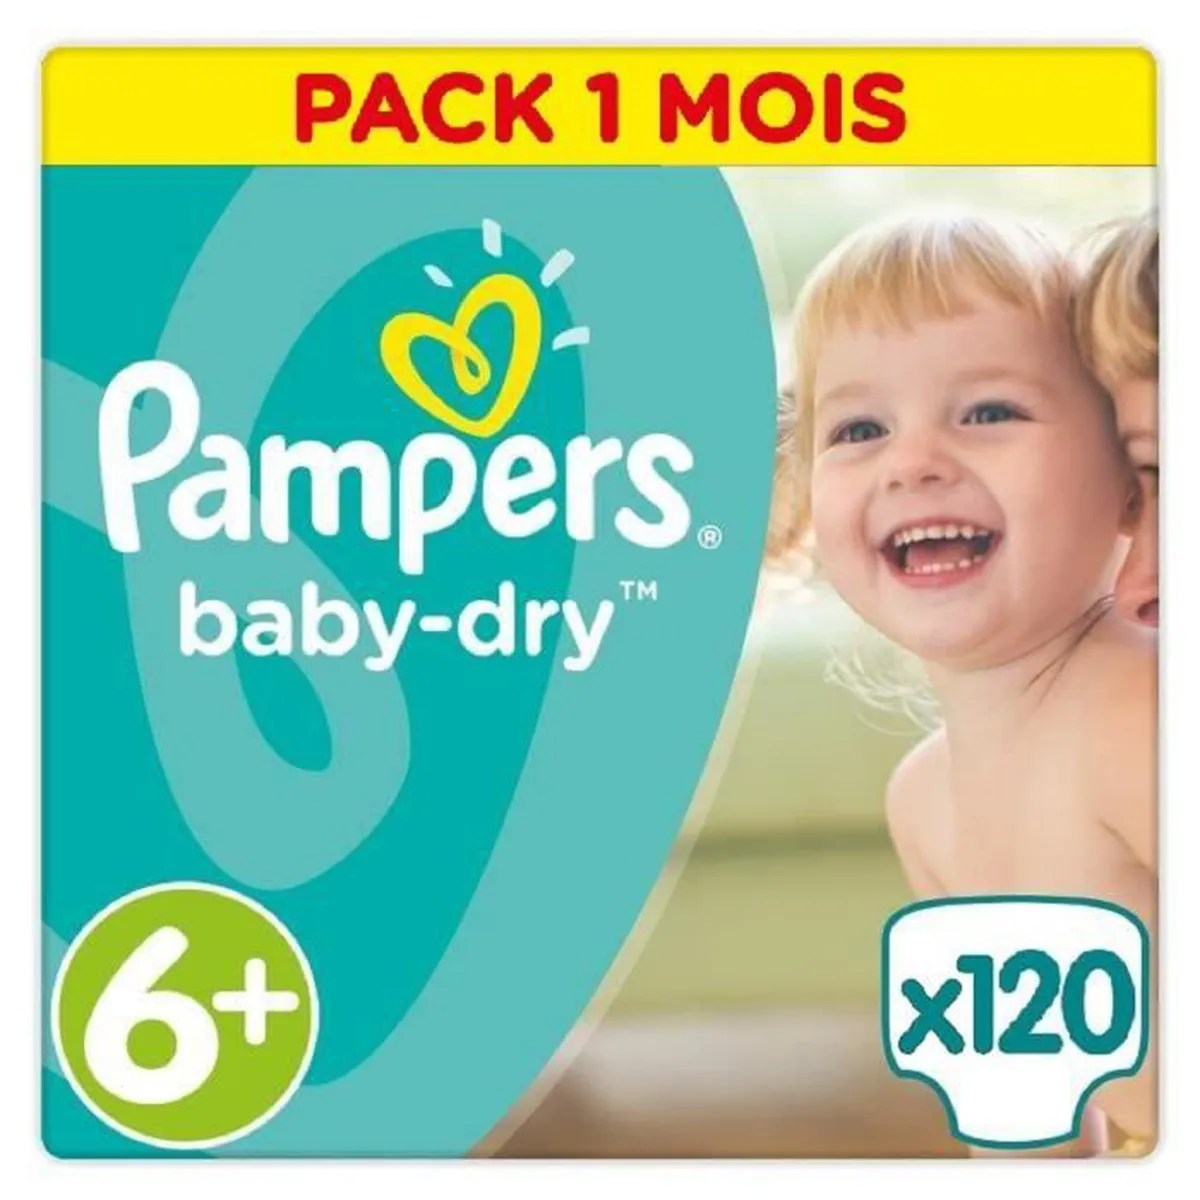 Couche Pampers Prix Pampers Baby Dry Taille 6 16kg 120 Couches Format Pack 1